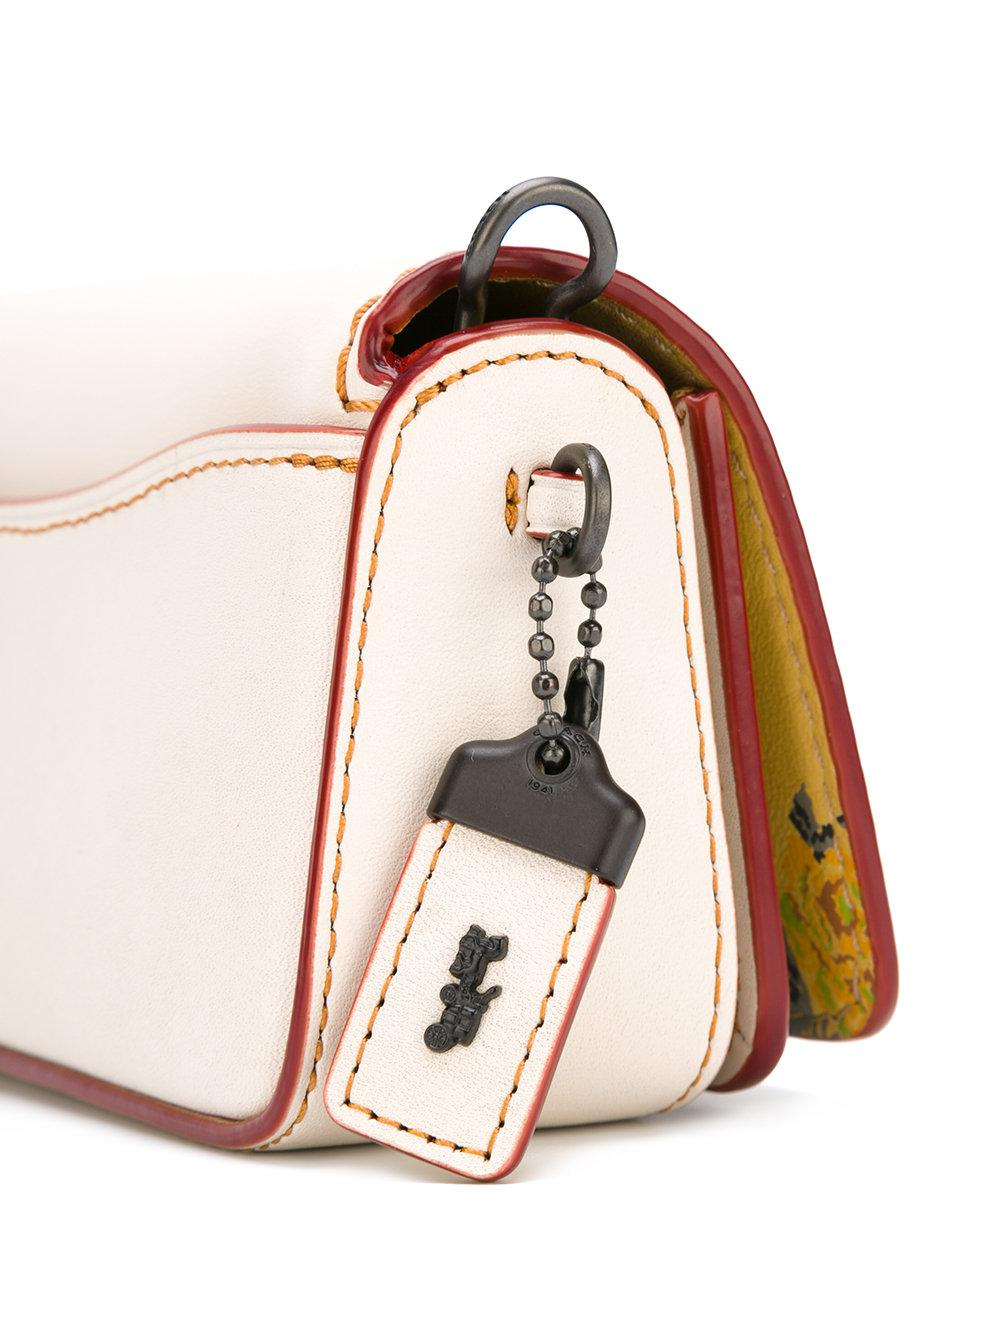 COACH Leather Chain Crossbody Bag in White